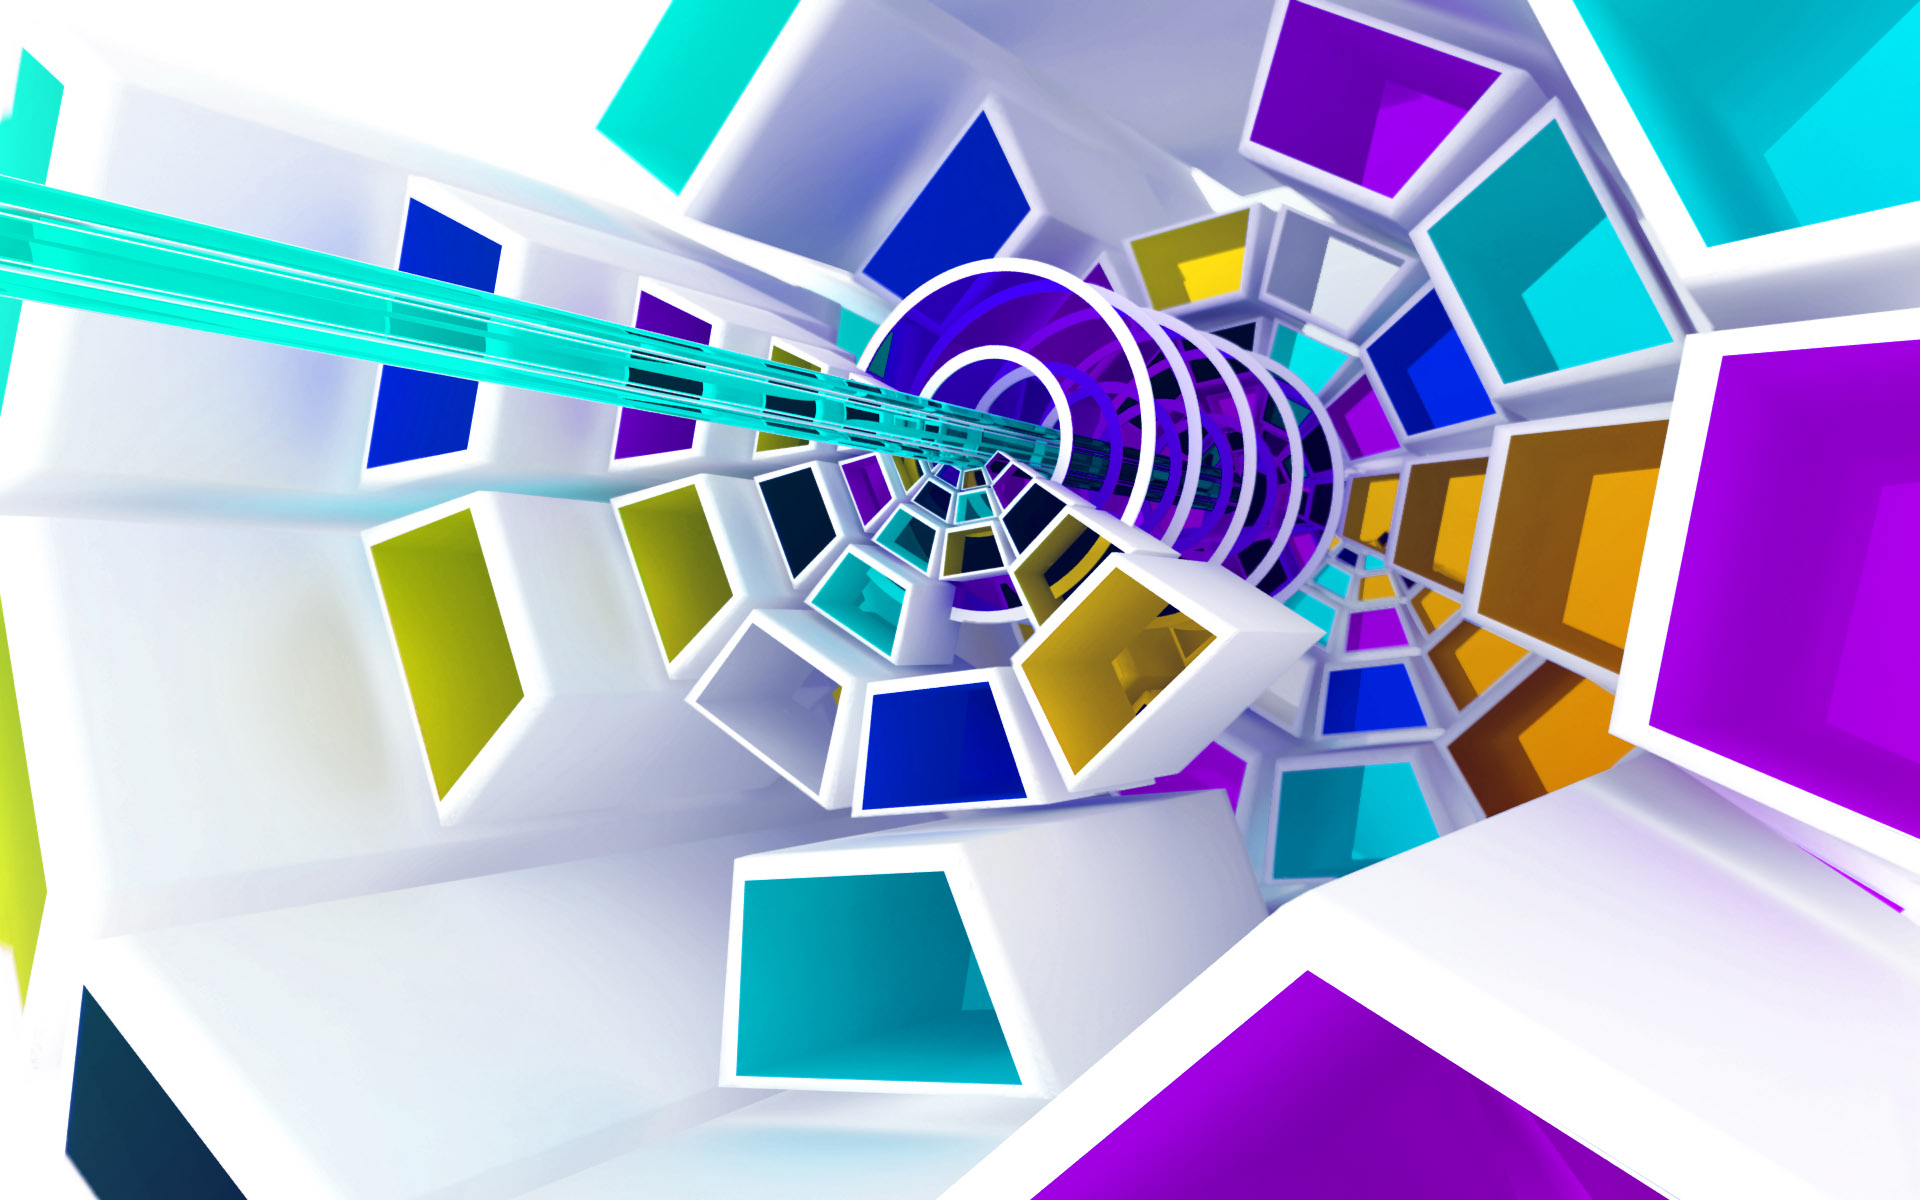 Chromatic of three dimensional design Wallpapers   HD Wallpapers 80702 1920x1200